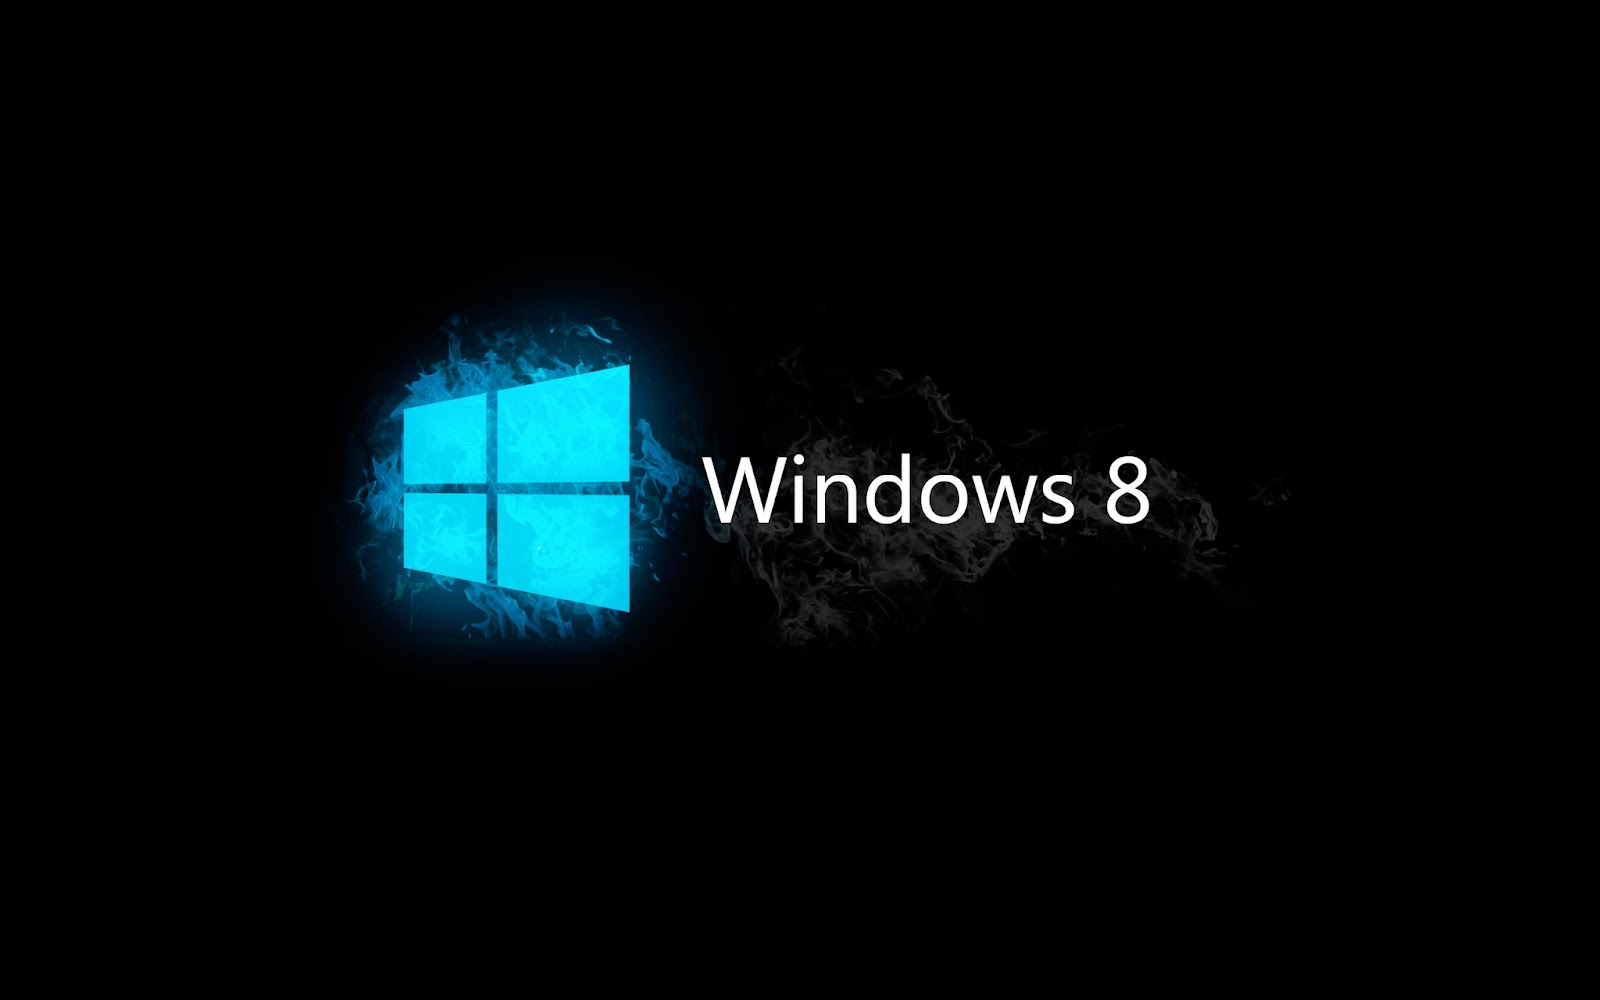 Free Download Windows 8 HD Wallpapers download new amazing wallpapers of windows Black